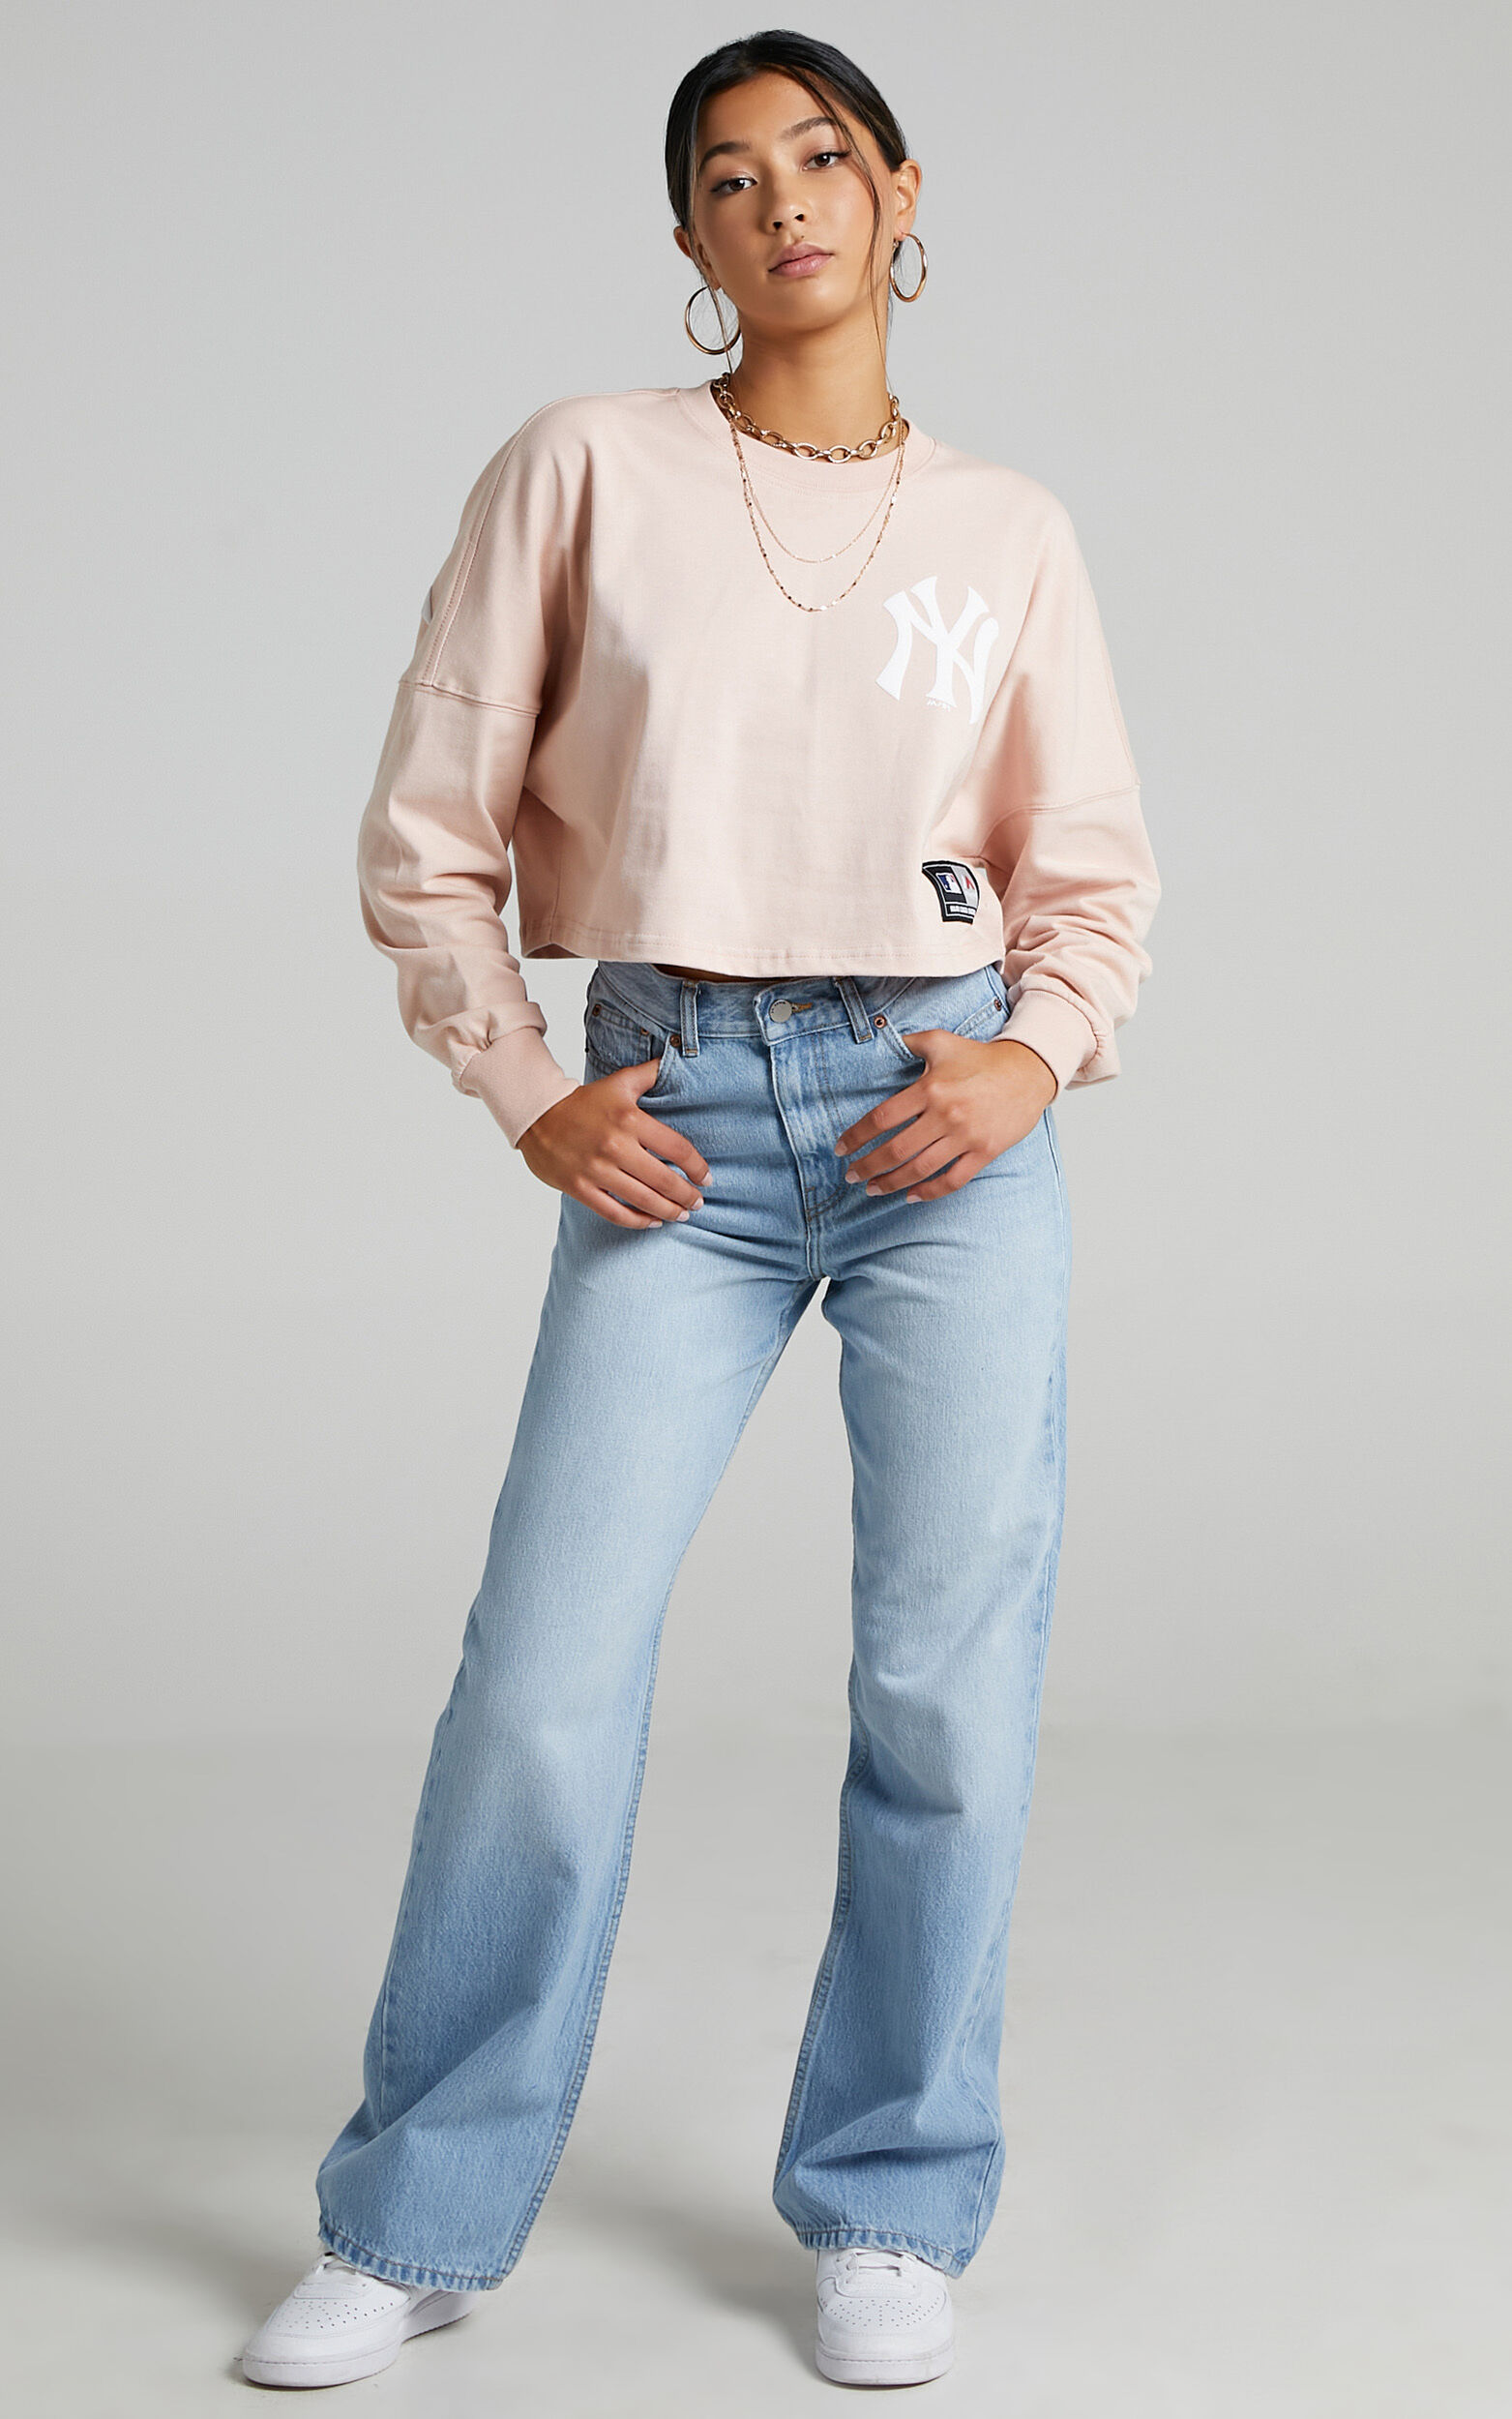 Majestic - NY Yankees Cropped Rando LS Tee in Peach - L, ORG1, super-hi-res image number null